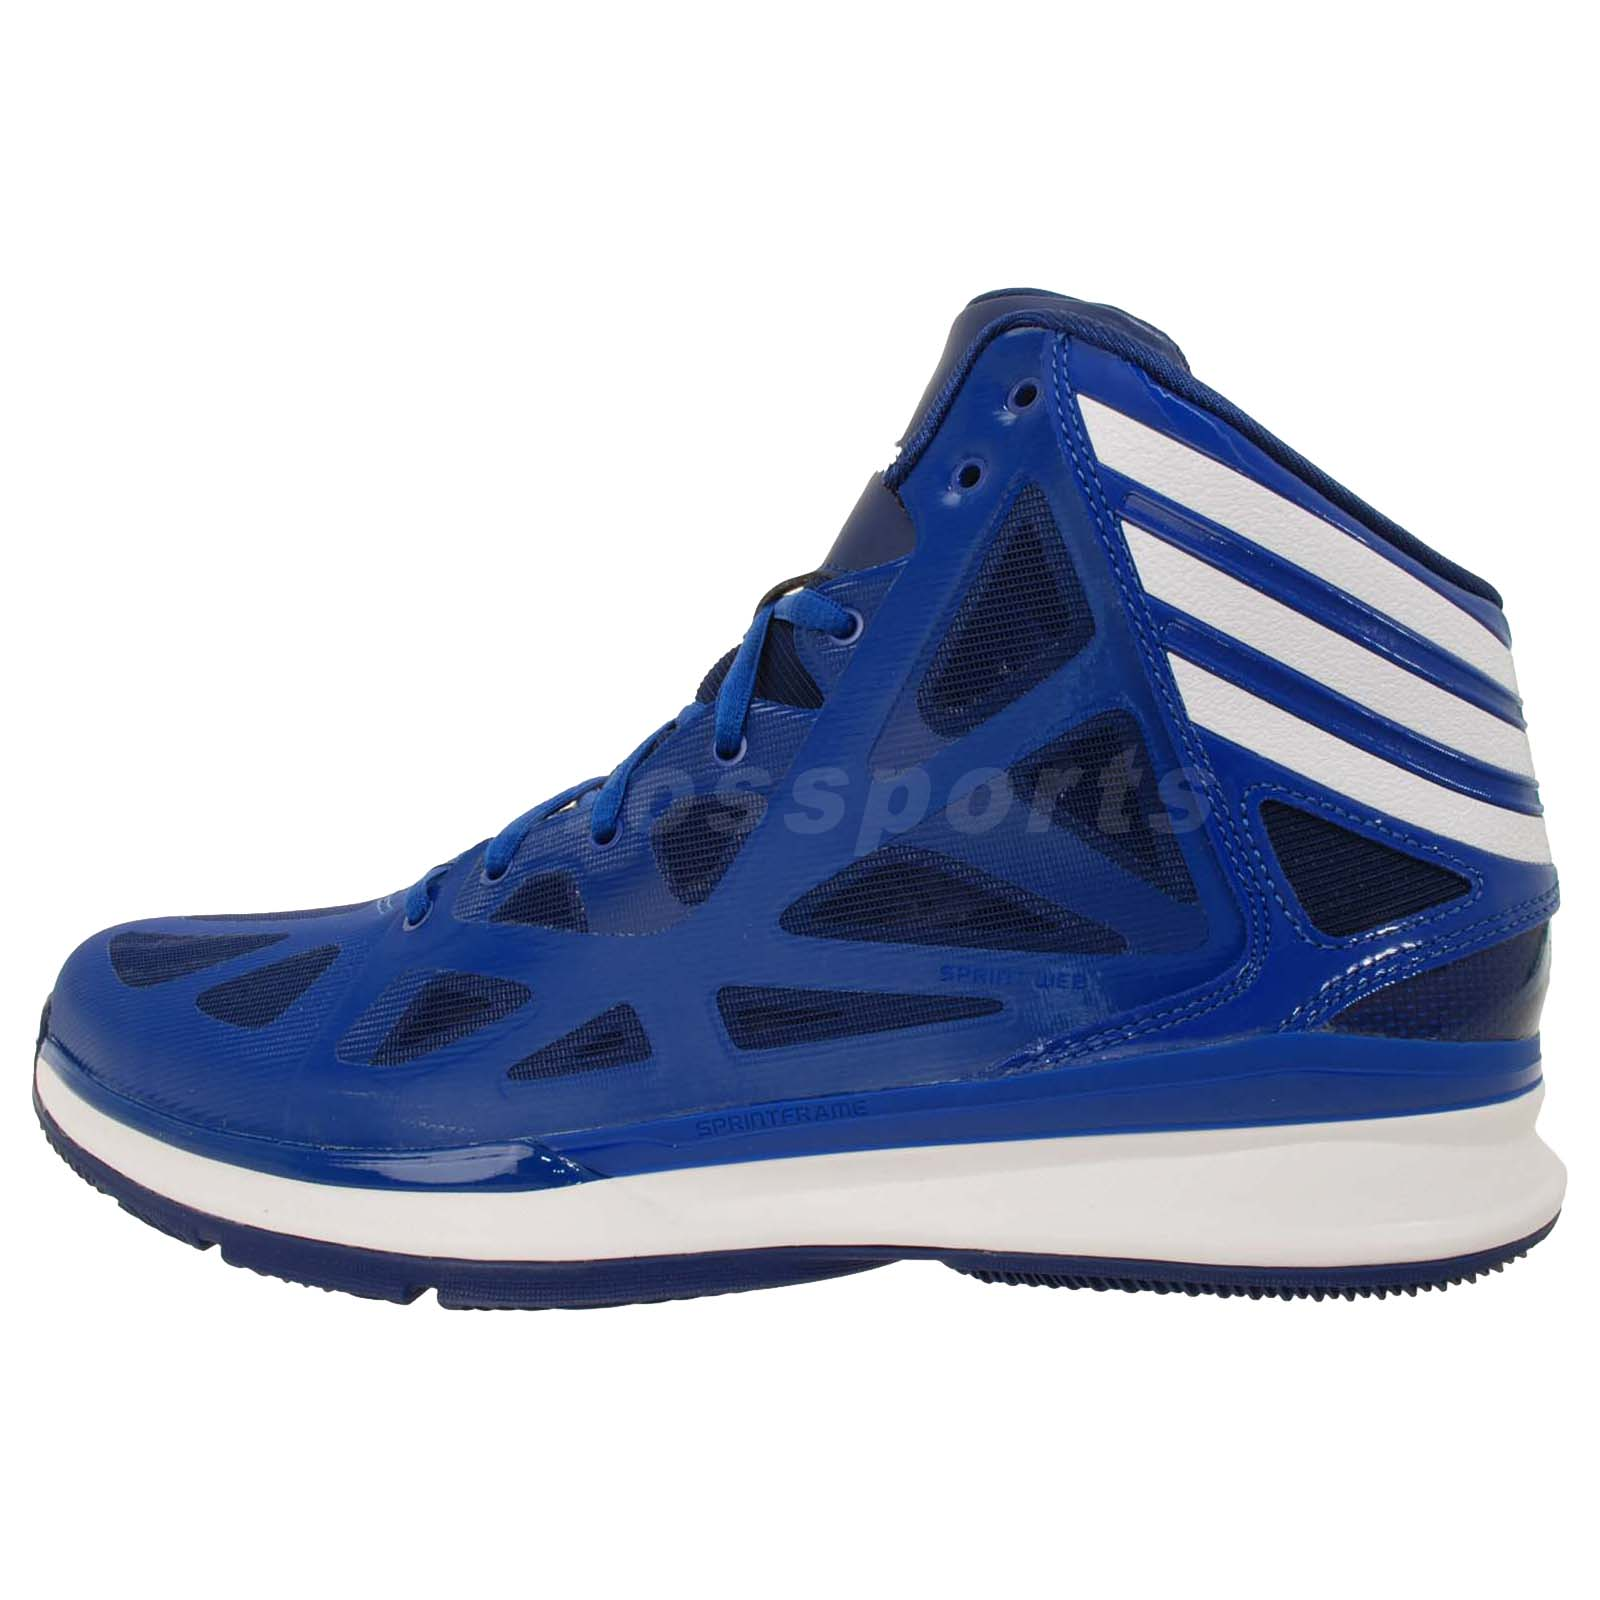 Shoes For Men 2013 Adidas Adidas Crazy Sh...